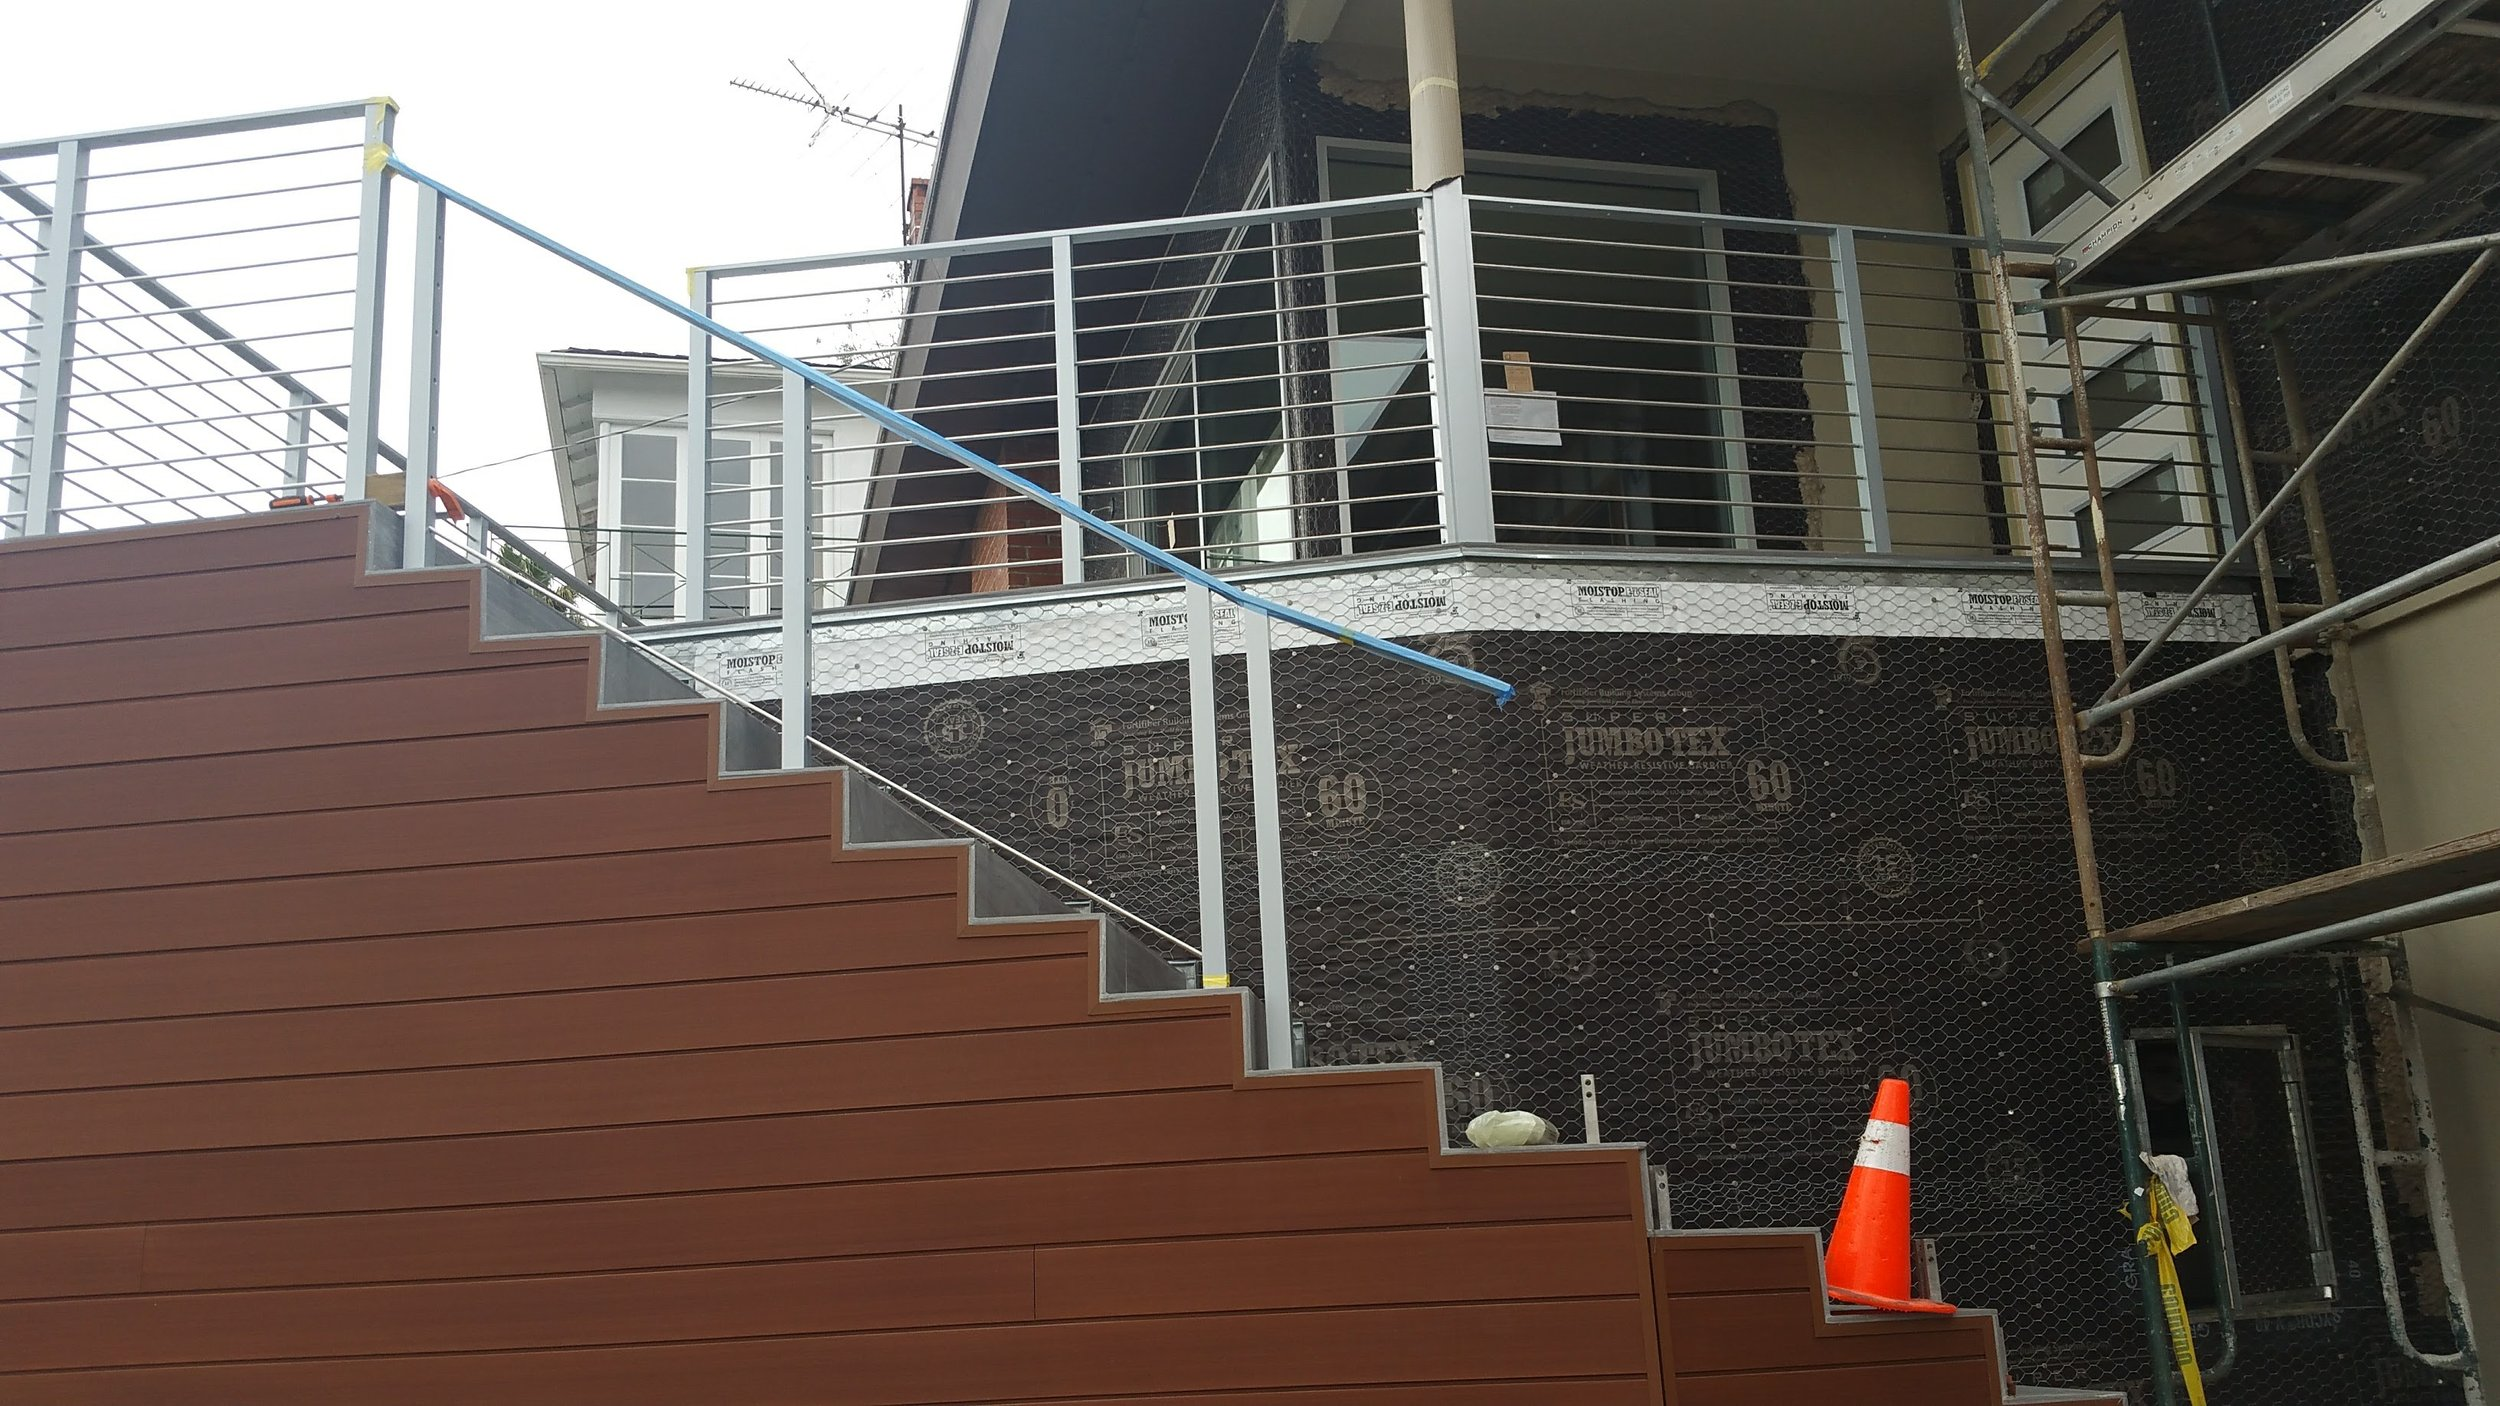 New Resysta composite wood siding